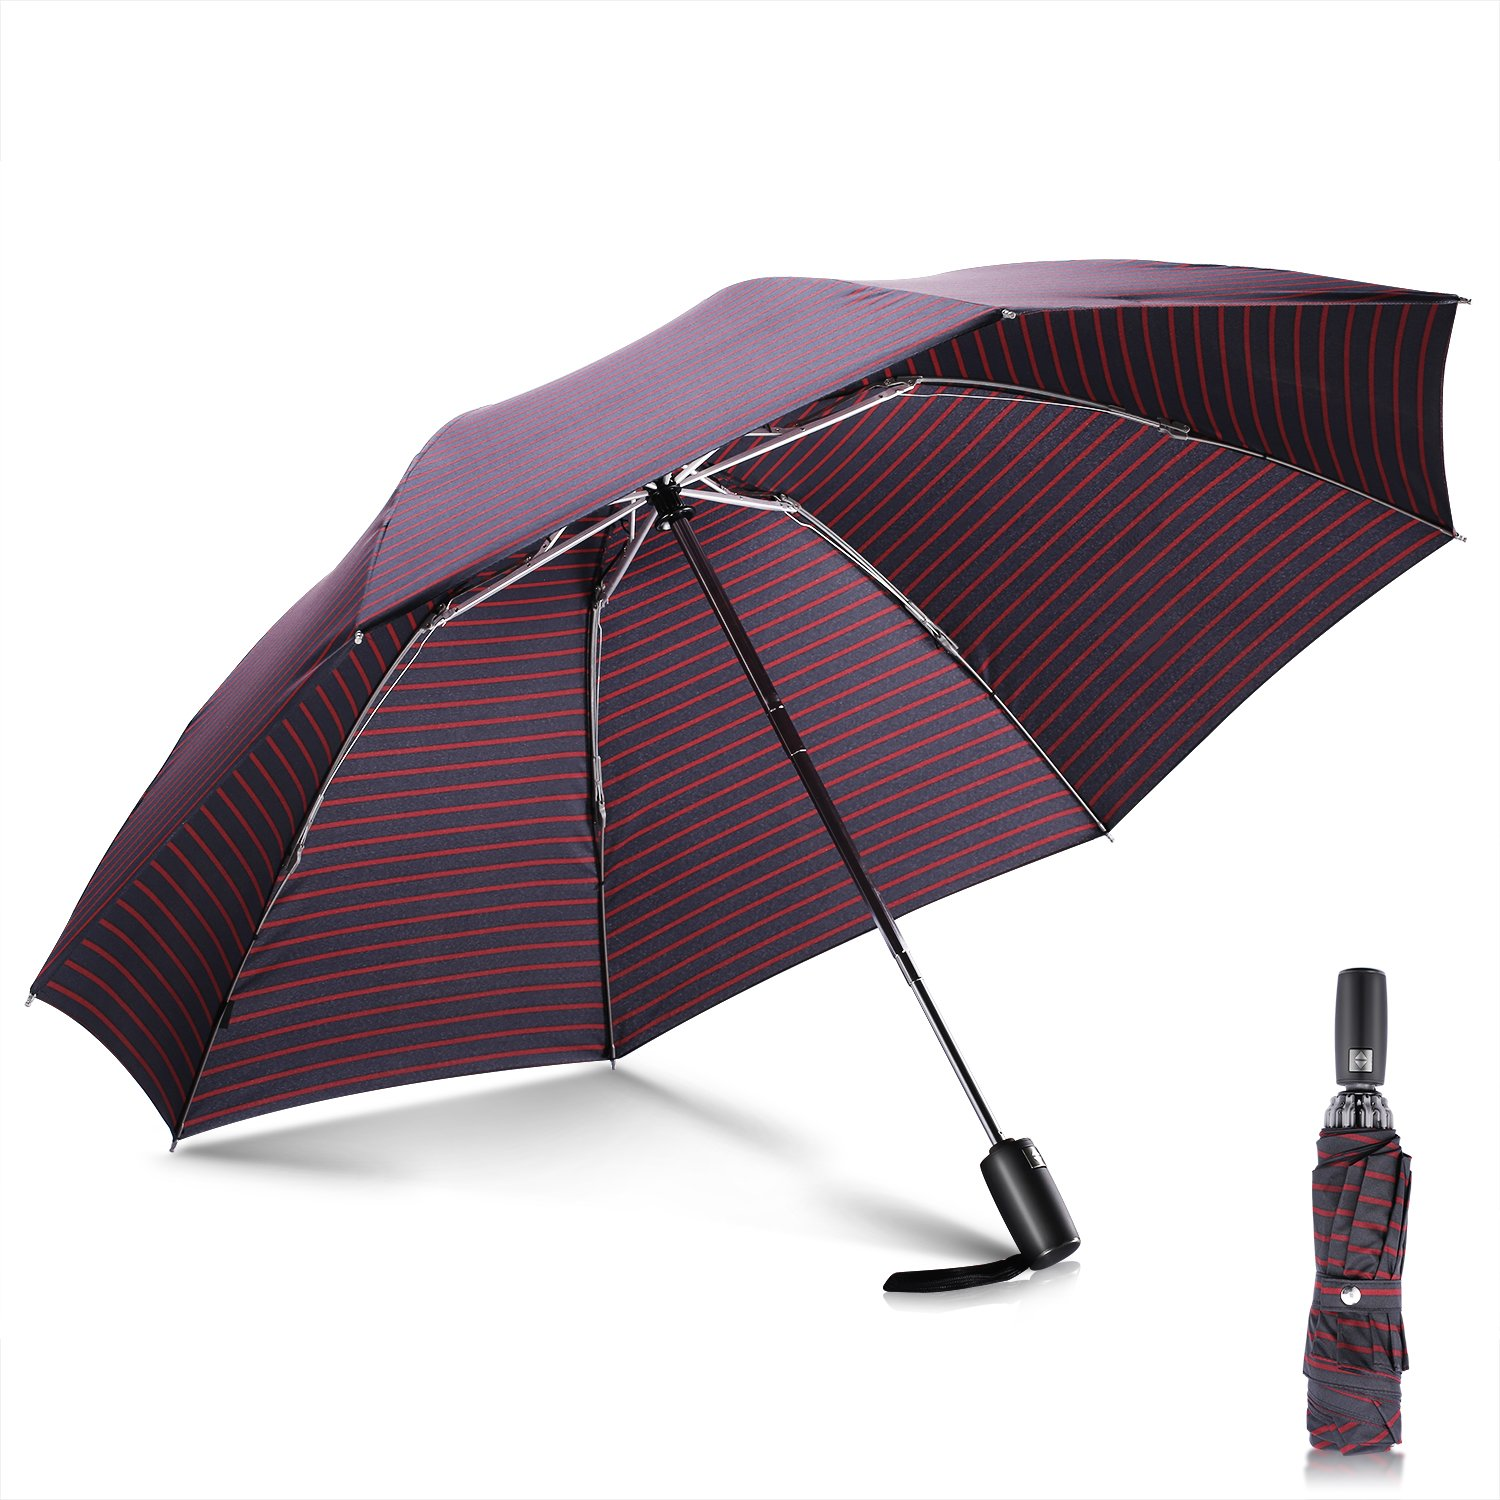 Windproof Umbrella, Leebotree Compact Collapsible Travel Outdoor Umbrella, Auto Open Close Button for One Handed Operation, 210T Fabric Canopy - Sturdy, Easy Carrying (Black& Red) LU03